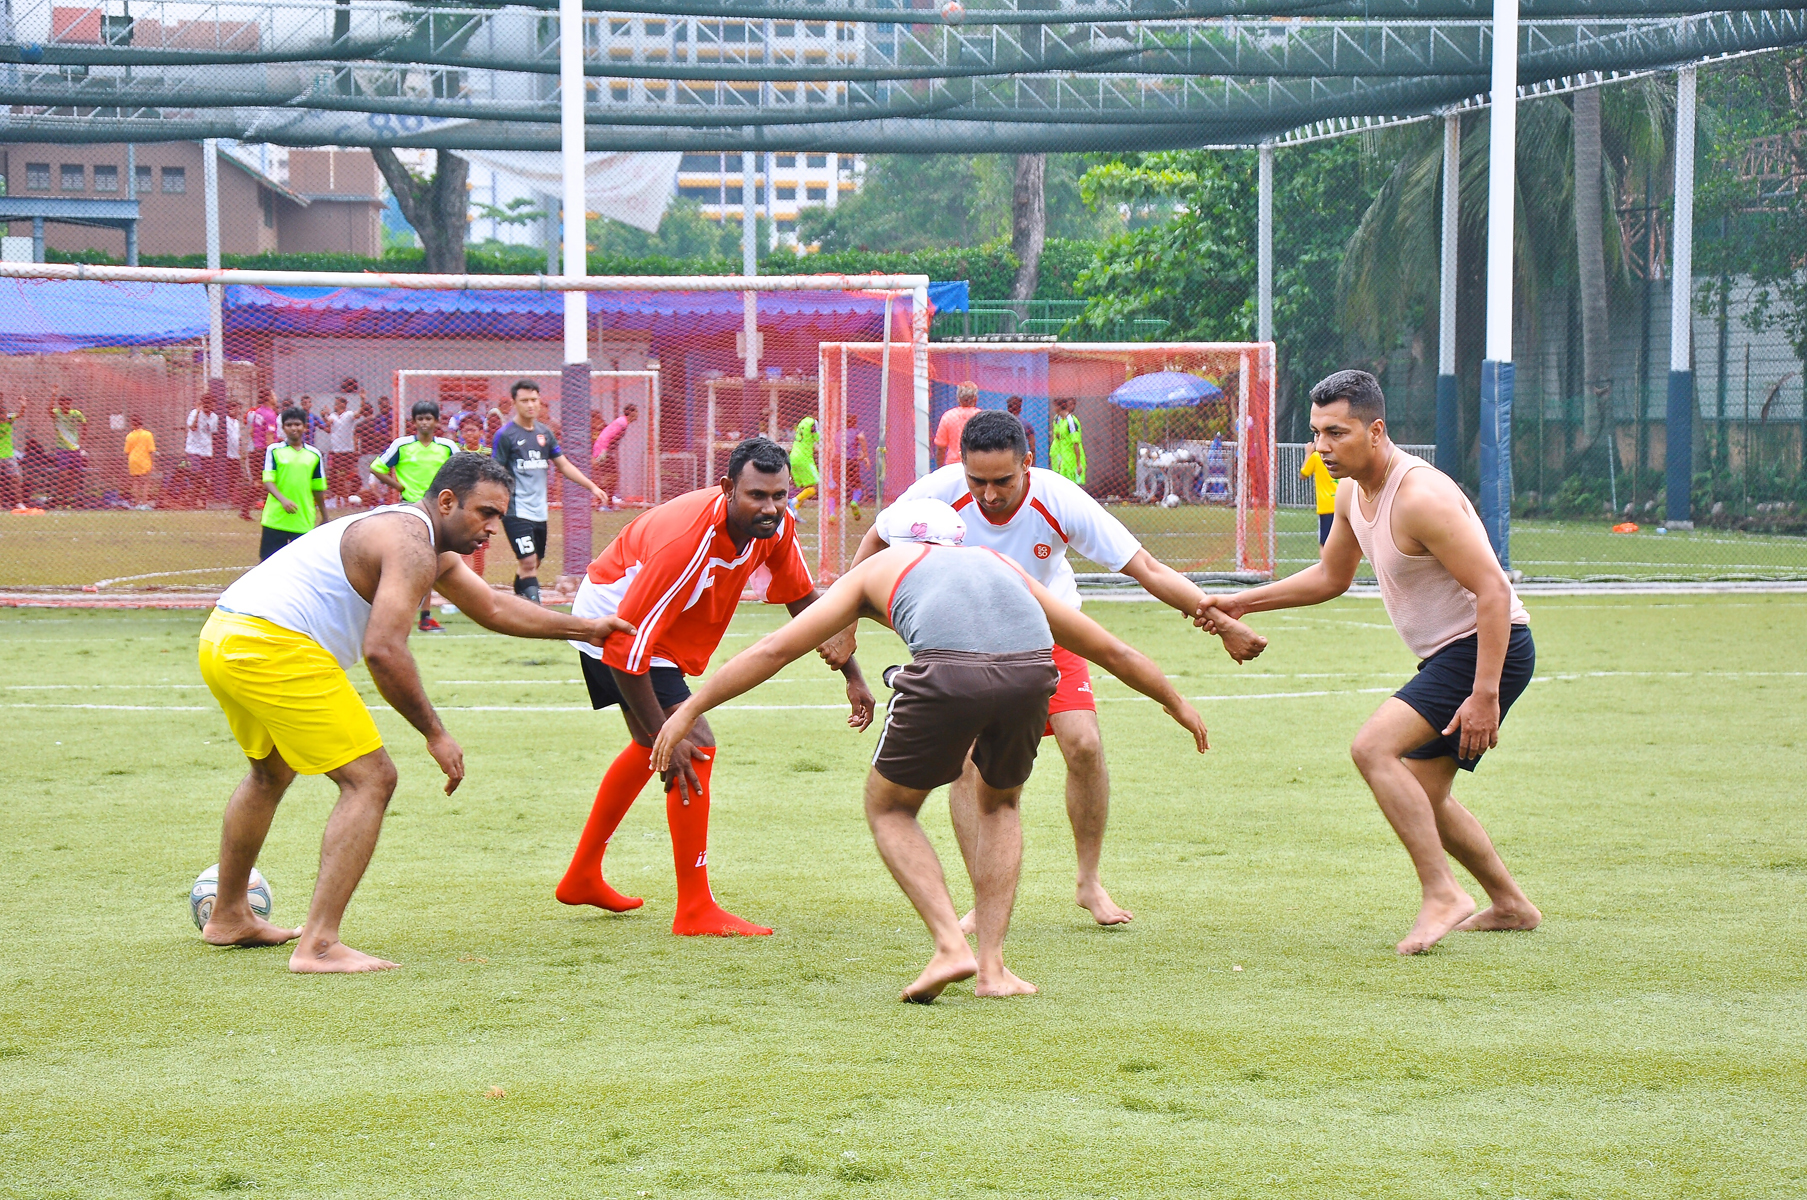 The Baisakhi mela is also a time when an exhibition kabaddi match is organised.